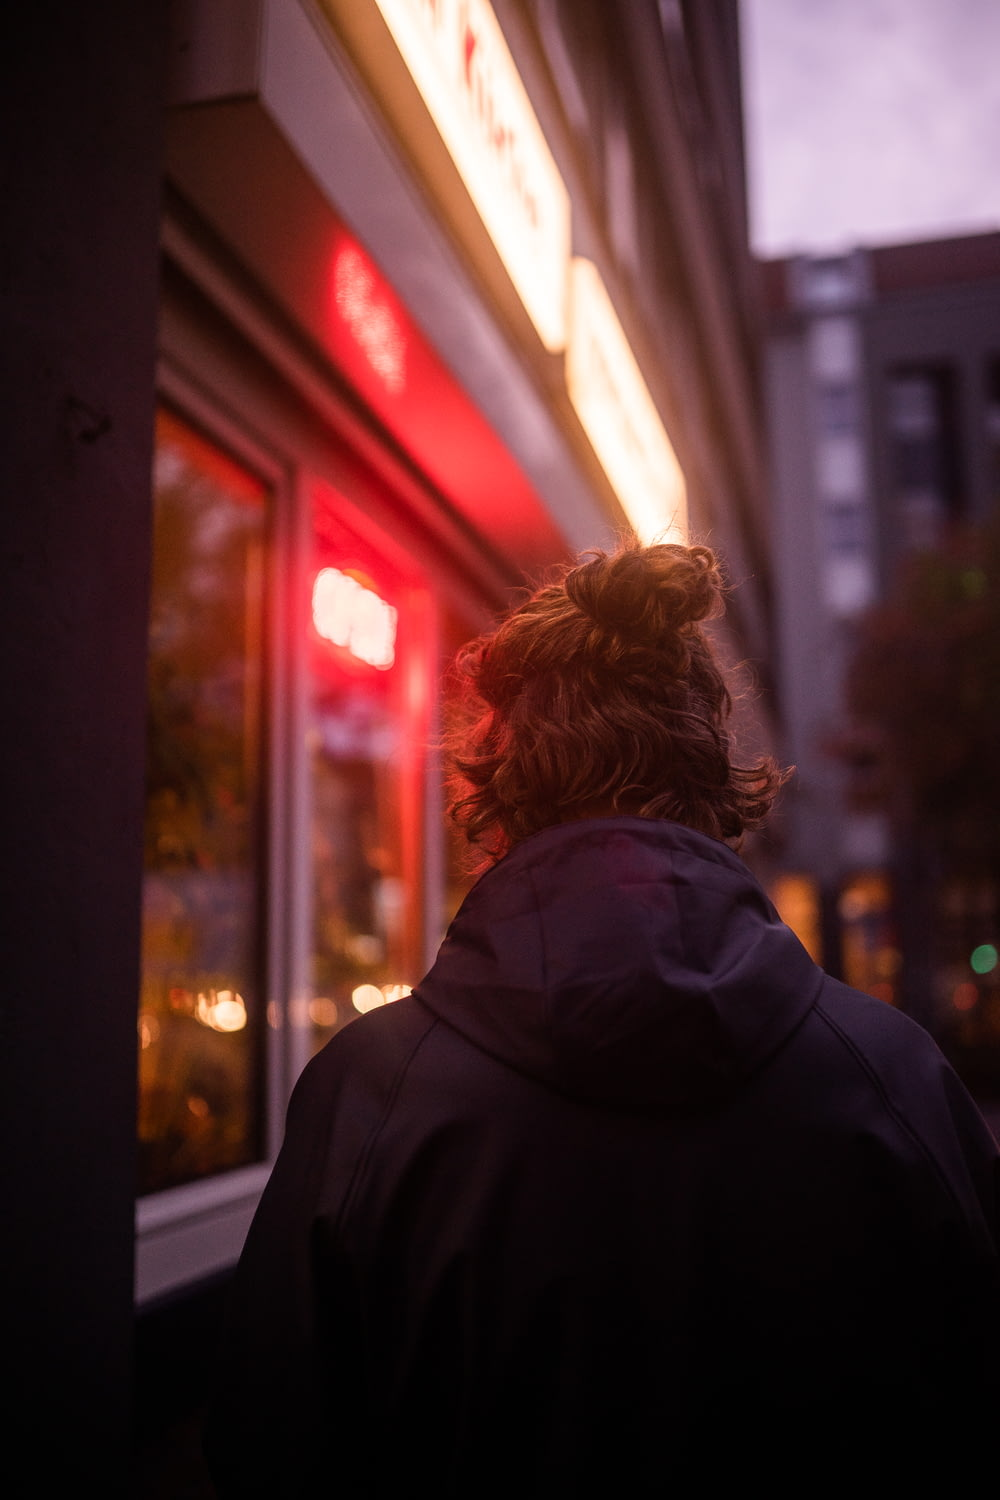 woman in black hoodie standing near glass window during night time